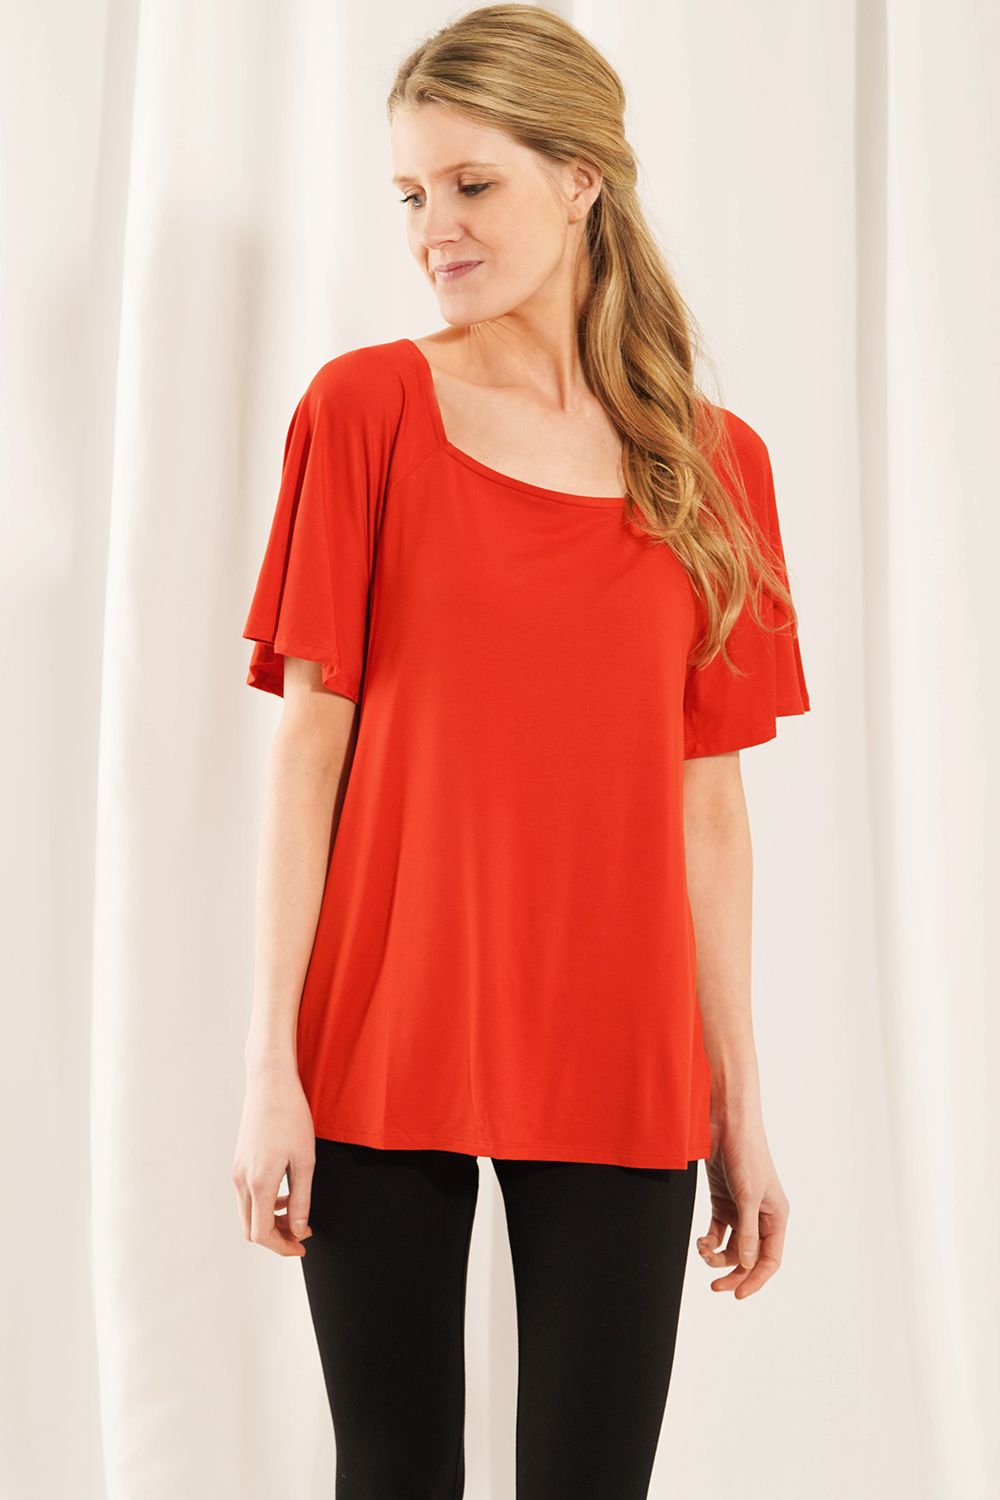 Update your closet with the Leanne Square Neck Top. The fluttery sleeves provide flattering arm coverage and add a feminine touch, giving your outfit an elegant look. The square neckline is perfect for pairing with your favourite bold necklace! Fabrication: 95% Viscose from Bamboo 5% Spandex LNBF Colour Tigerlily Orange $65.00